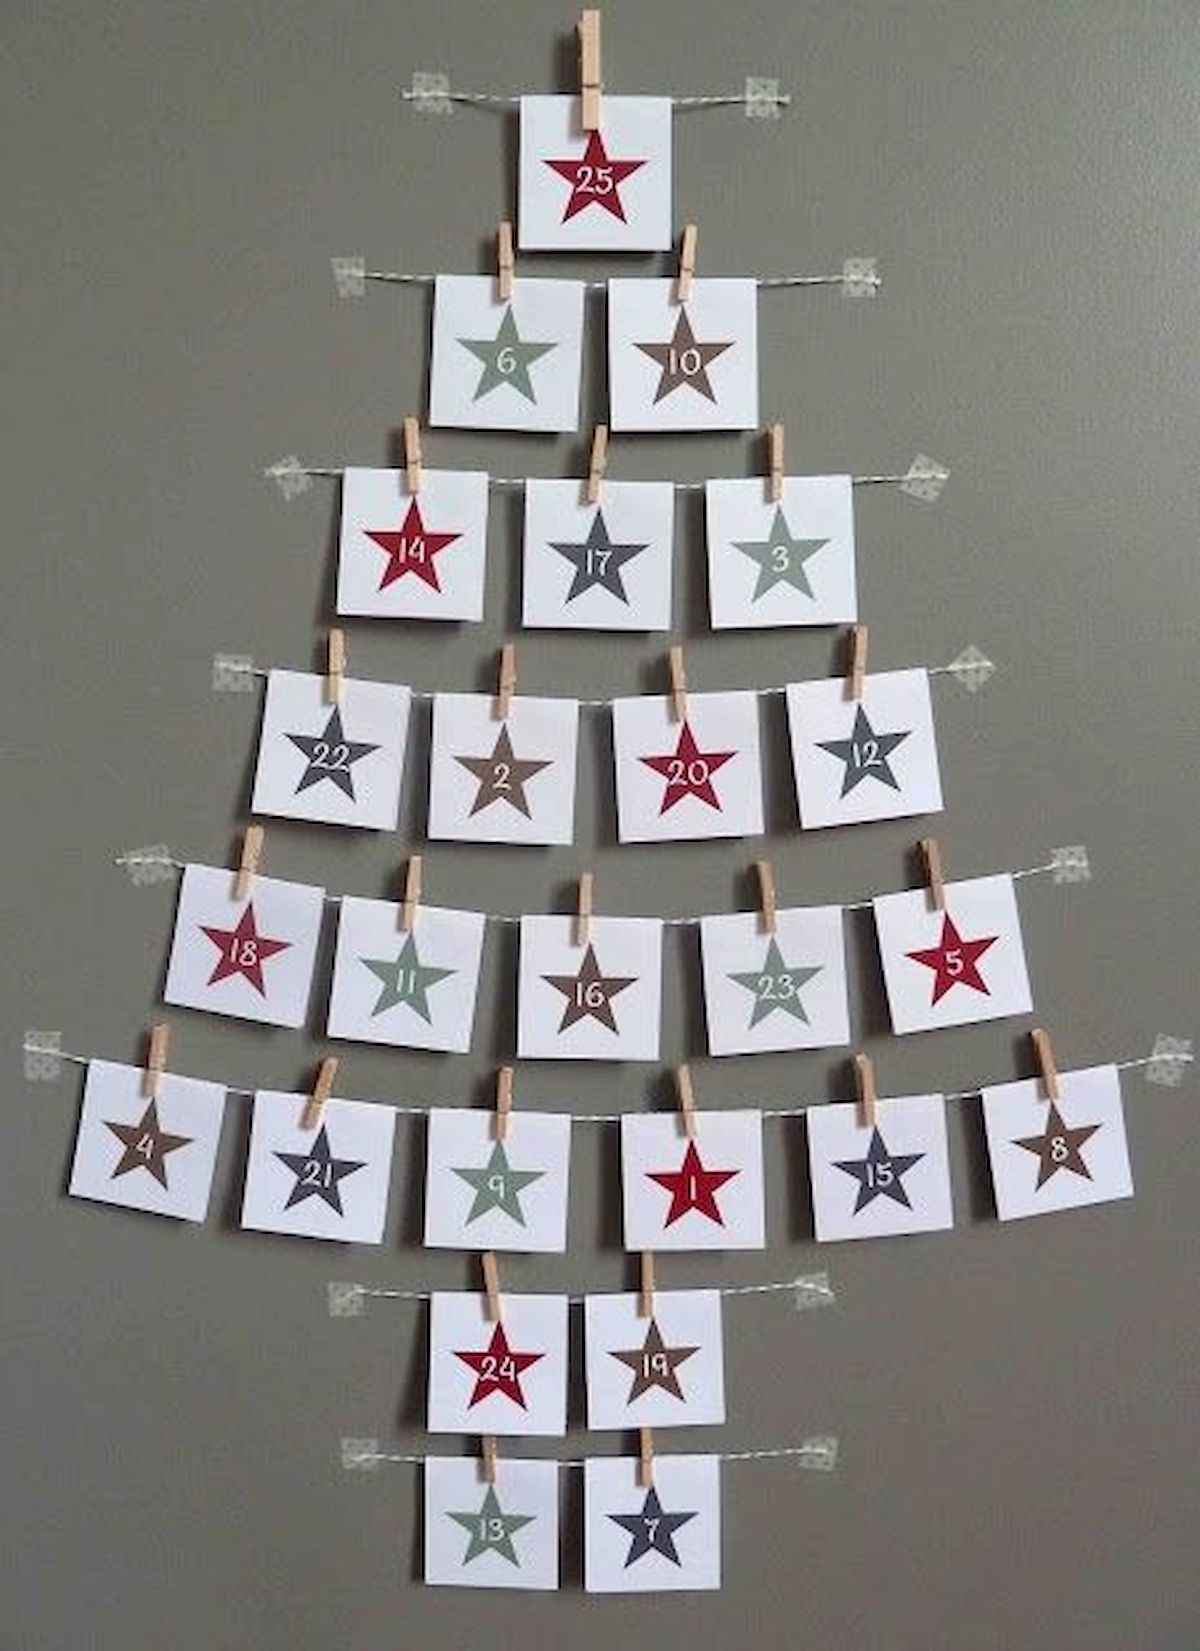 60 awesome wall art christmas ideas decorations (55)